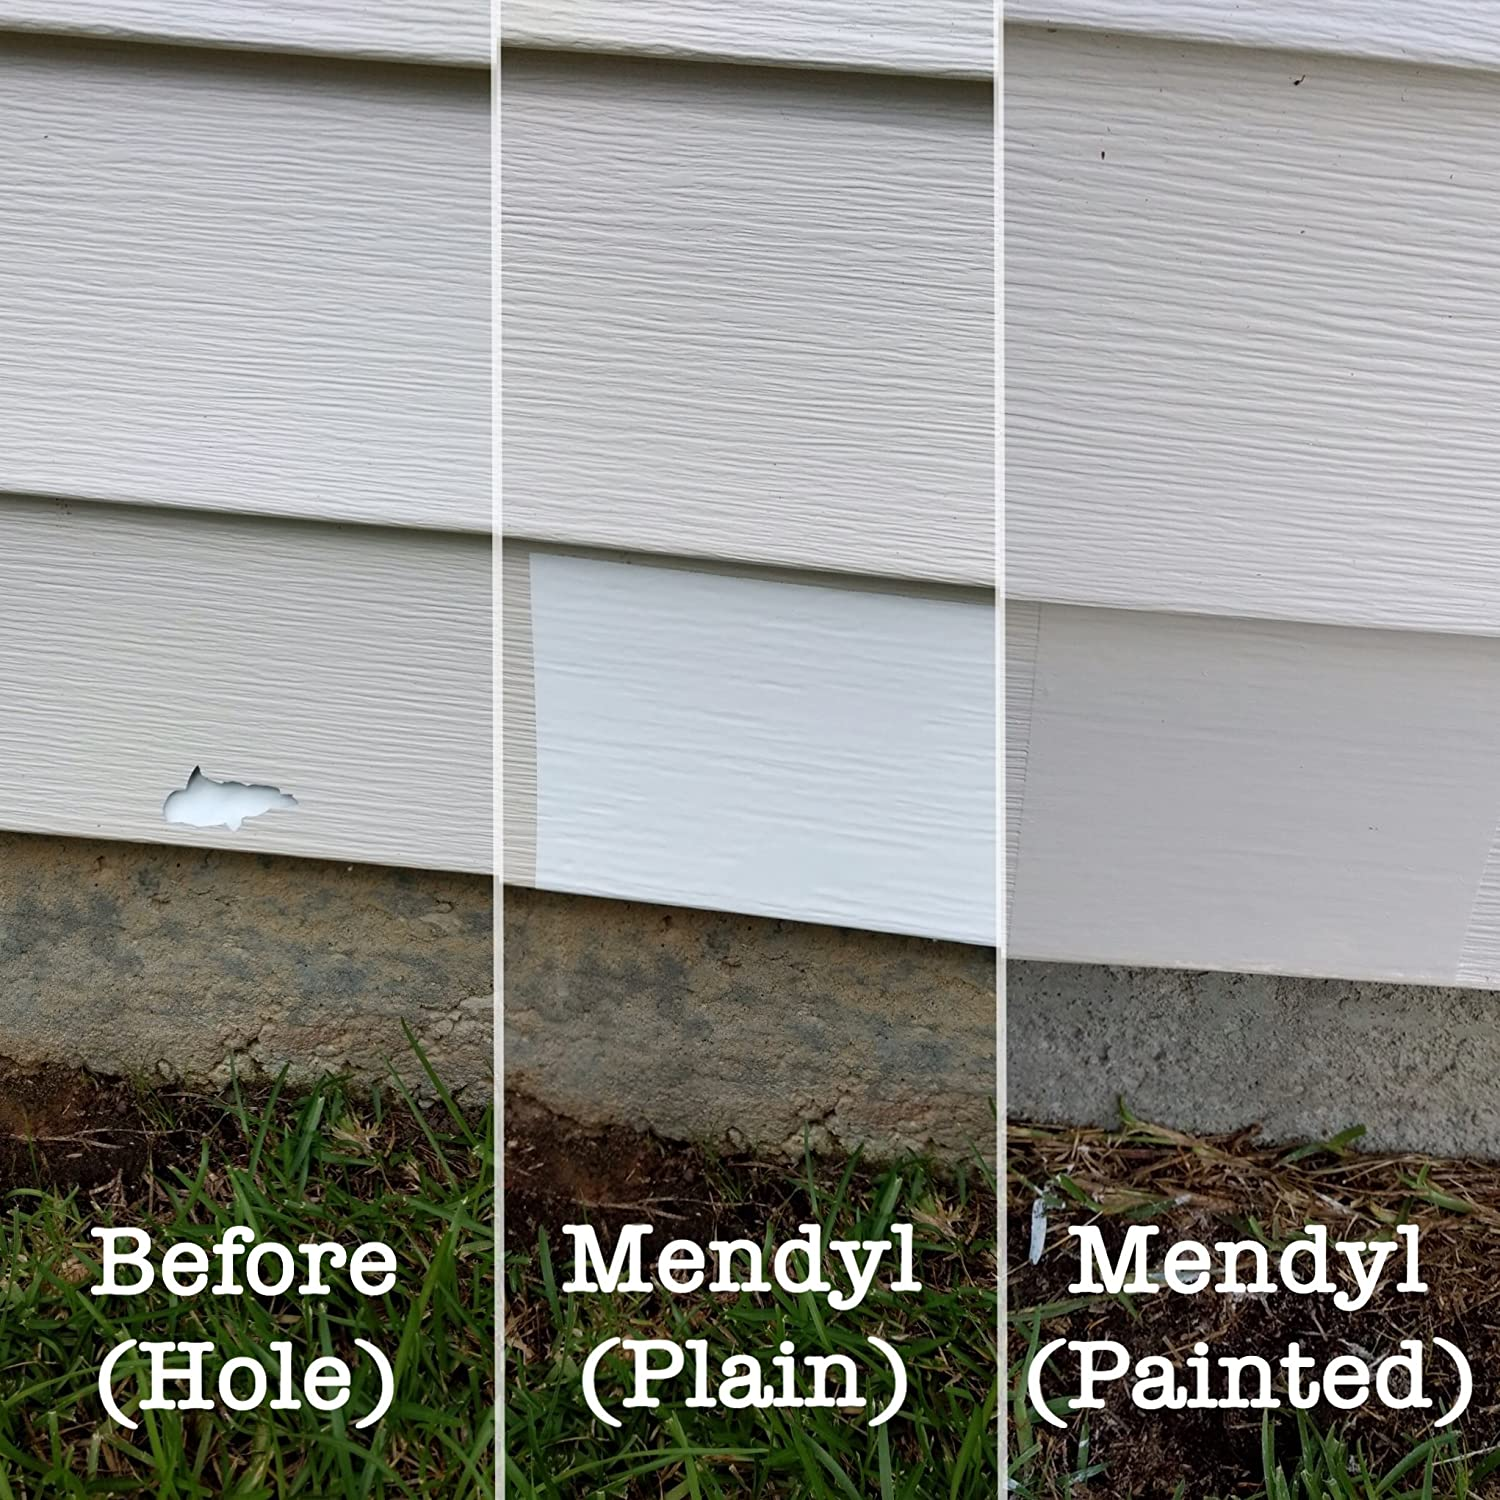 Materials used for house siding wonderful home design for Allura siding vs hardie siding